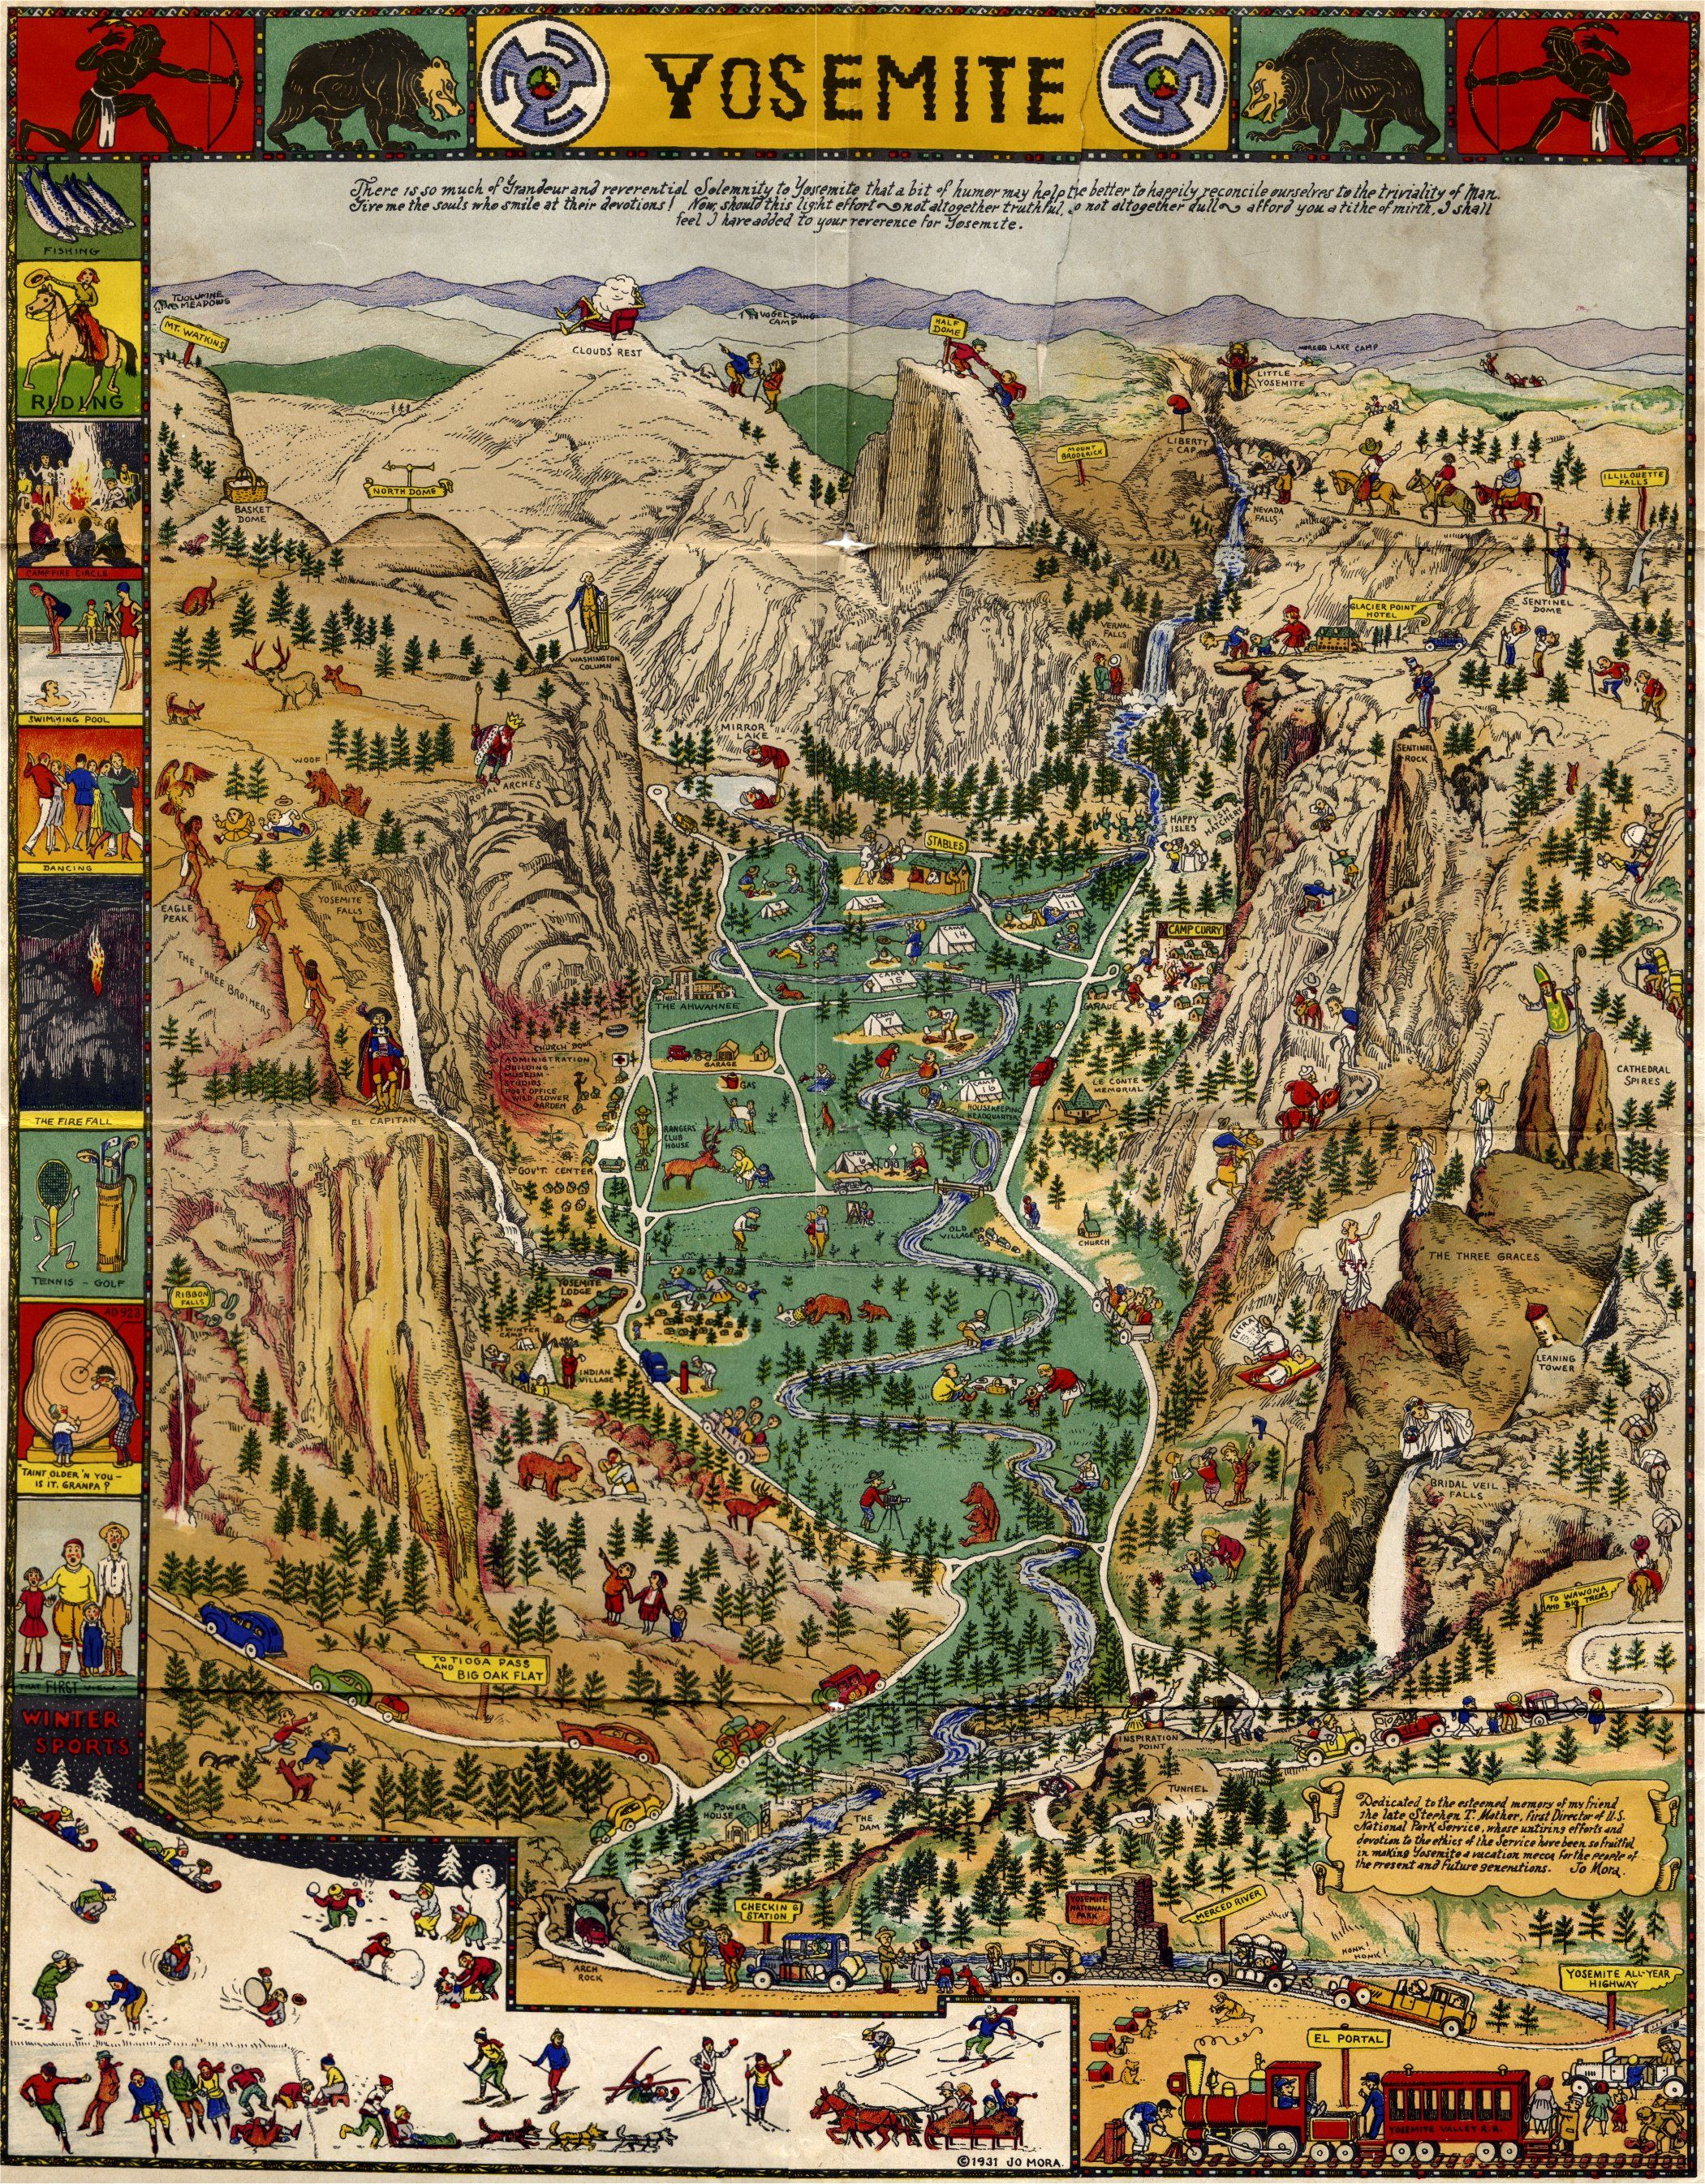 Map Of Yosemite National Park From   Go In The Early Spring - Vintage los angeles map poster